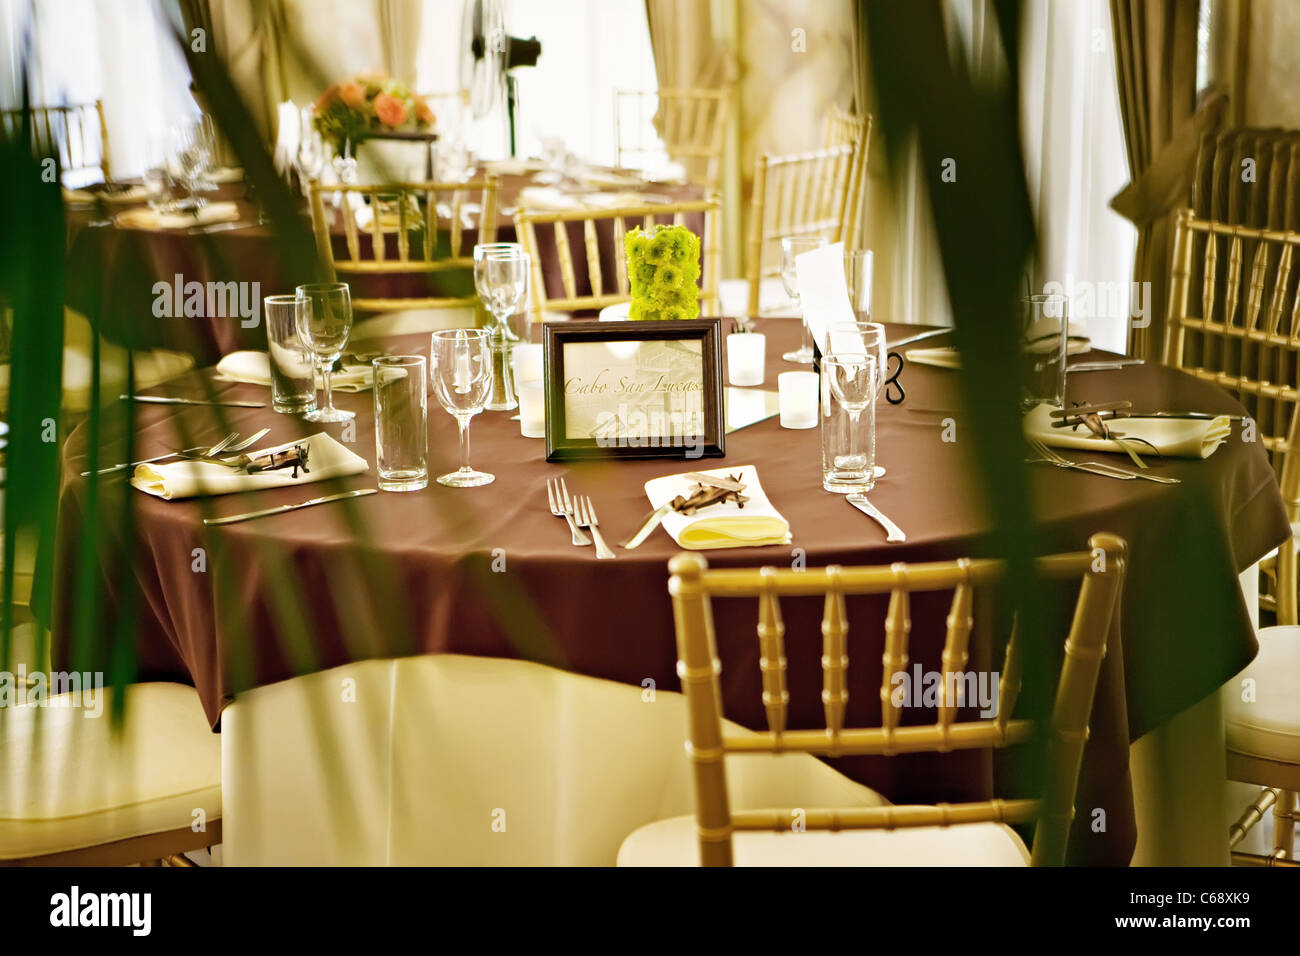 Formal Dinner Table At A Fancy Restaurant Stock Photo Alamy - Fancy restaurant table